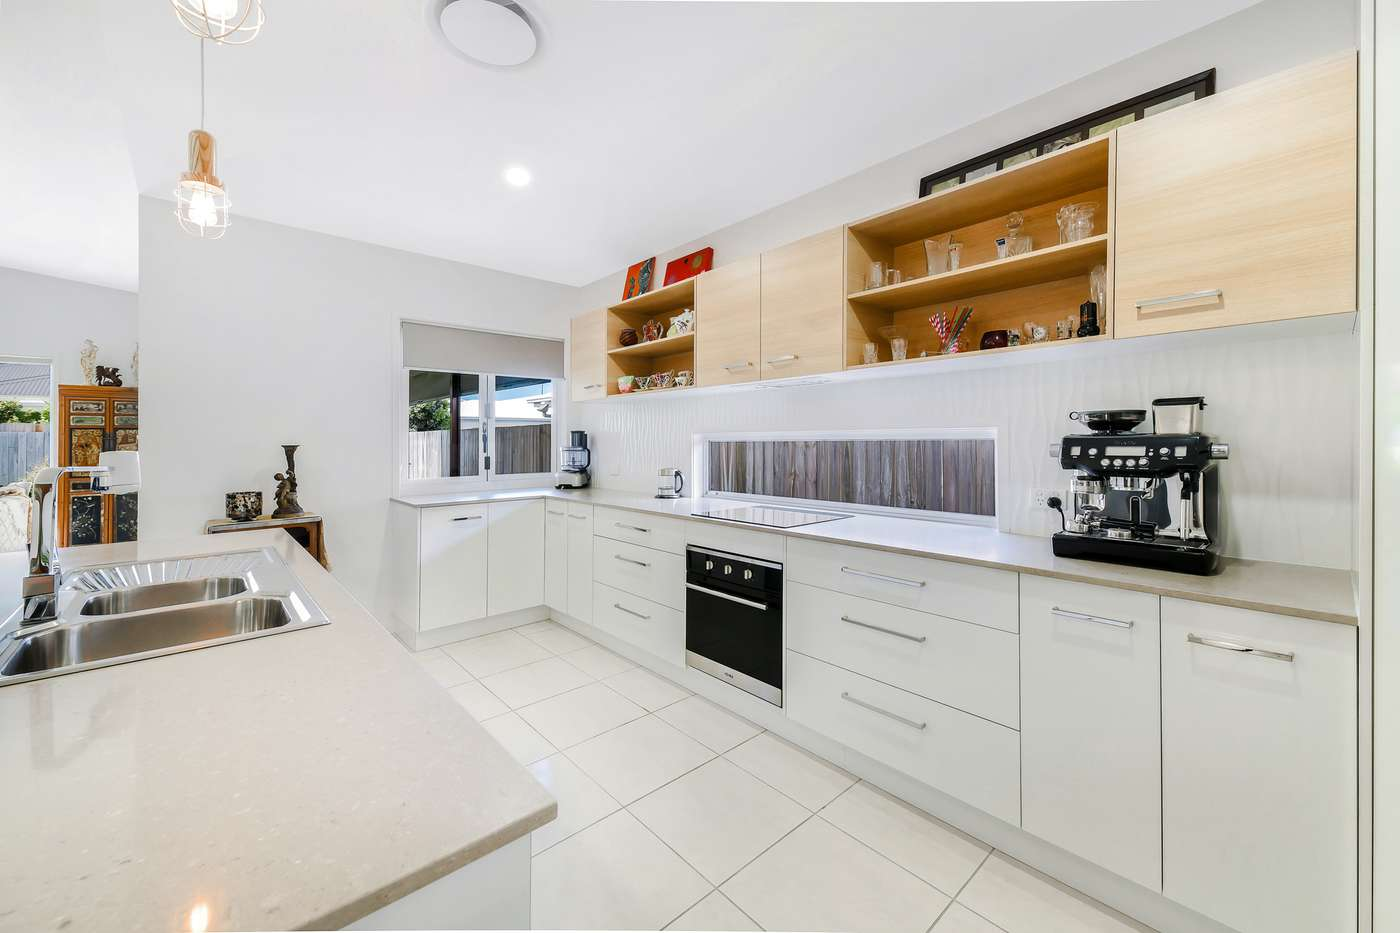 Main view of Homely house listing, 23 Olive Circuit, Caloundra West, QLD 4551